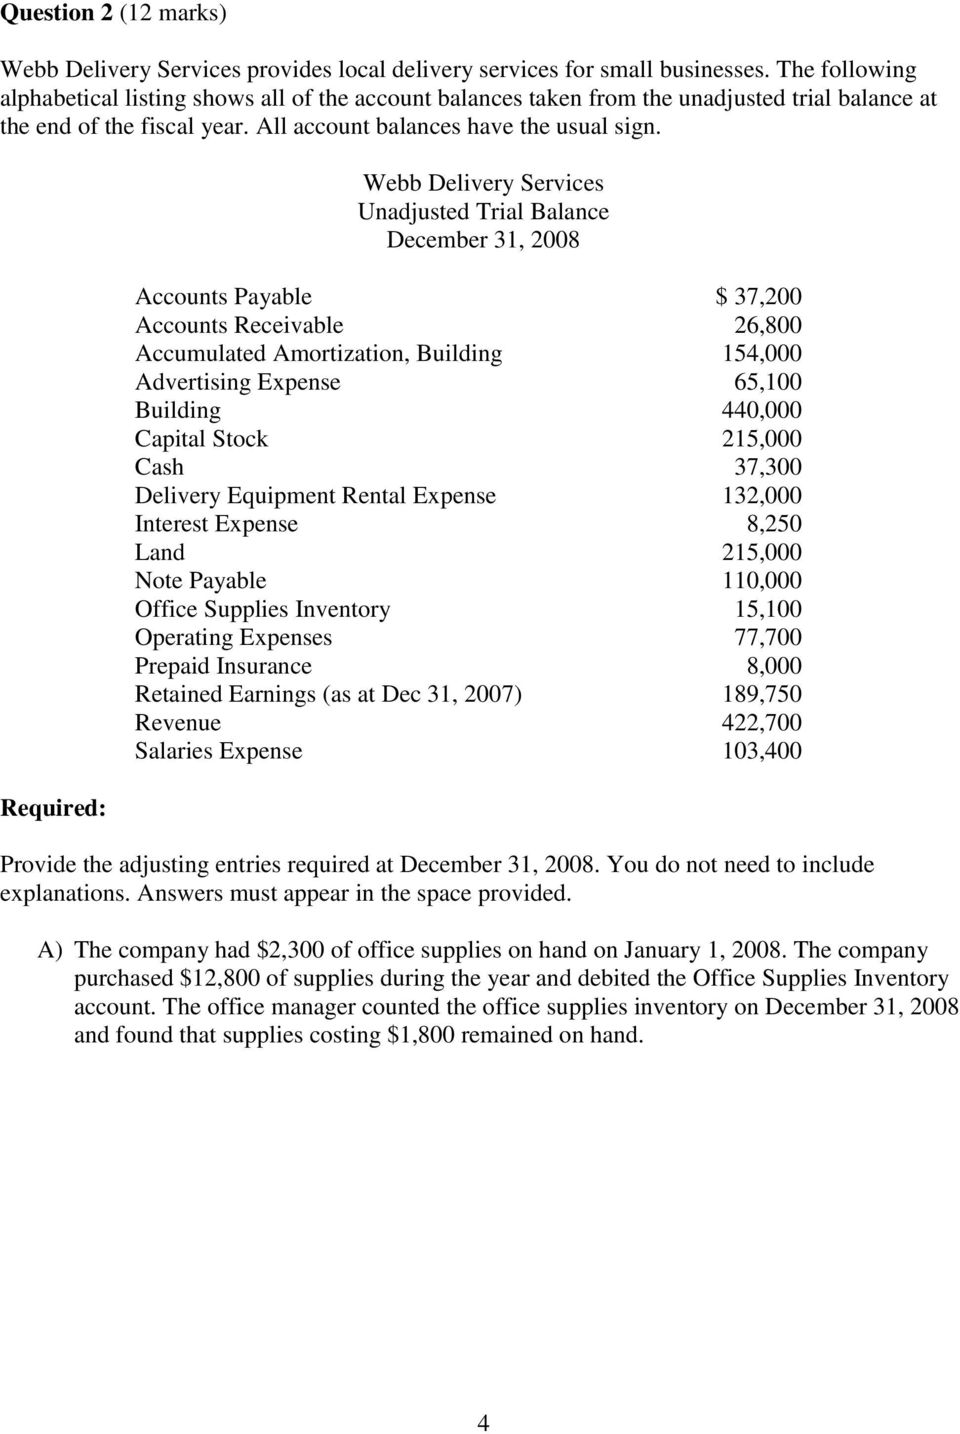 Required: Webb Delivery Services Unadjusted Trial Balance December 31, 2008 Accounts Payable $ 37,200 Accounts Receivable 26,800 Accumulated Amortization, Building 154,000 Advertising Expense 65,100